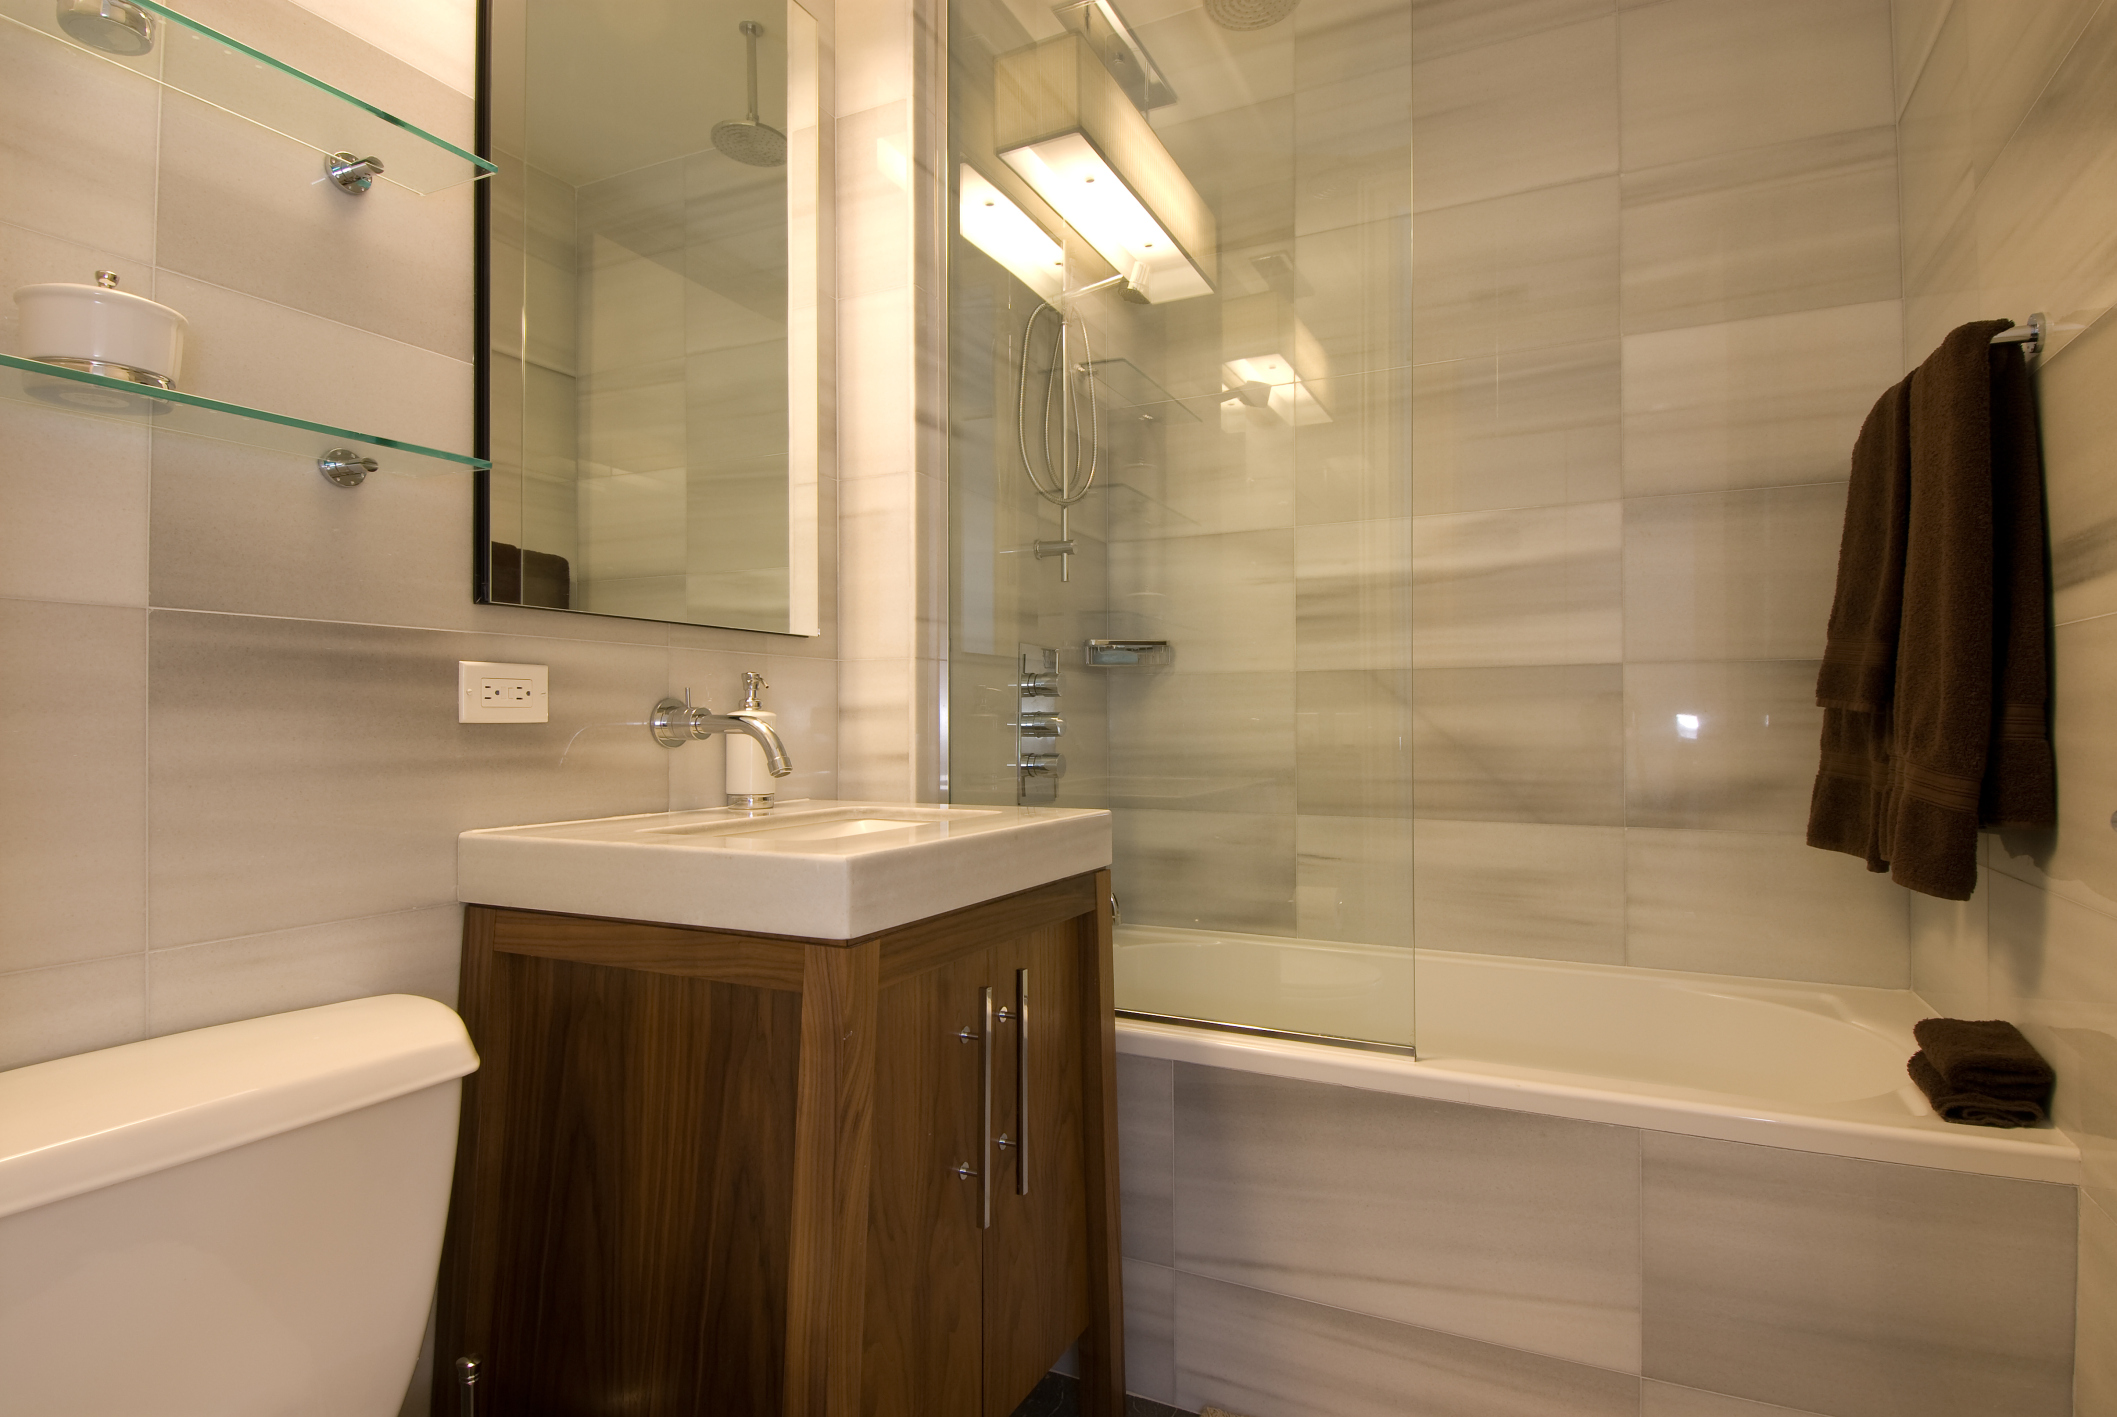 How To Hang Shower Curtains For A Garden Tub Homesteady